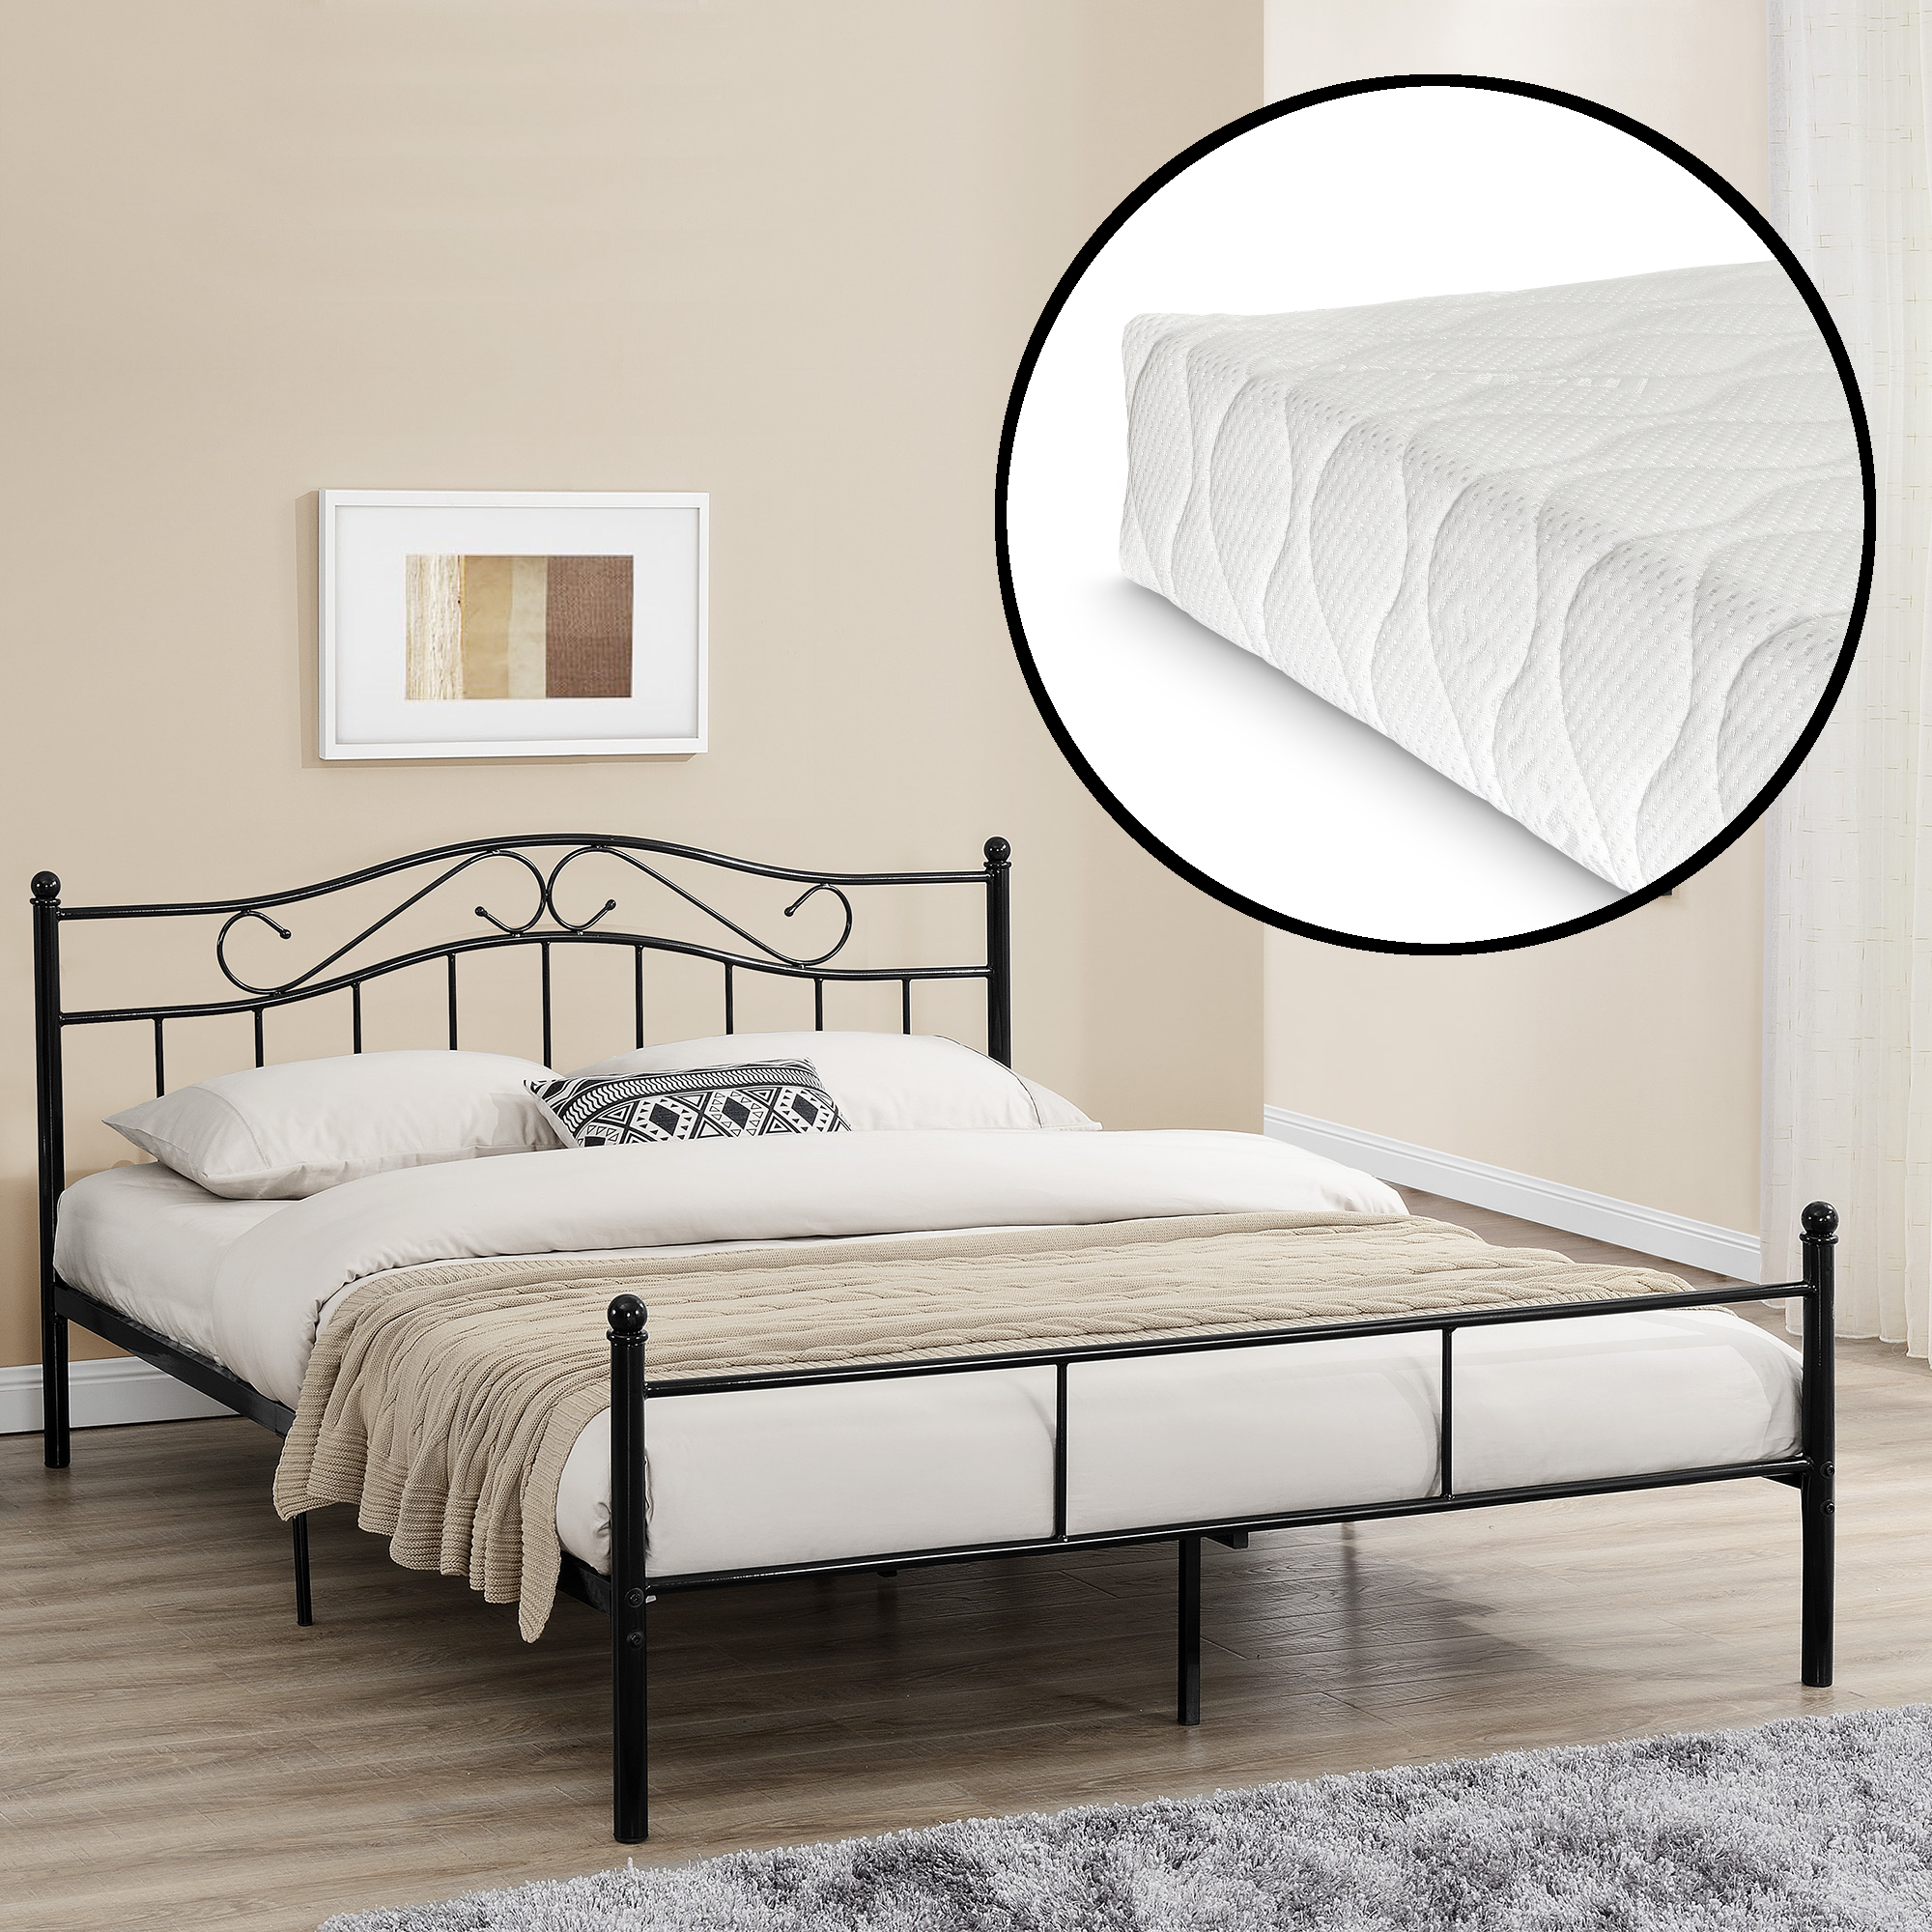 lit en m tal avec matelas 200x200cm noir lit ch ssis de lit lit double ebay. Black Bedroom Furniture Sets. Home Design Ideas